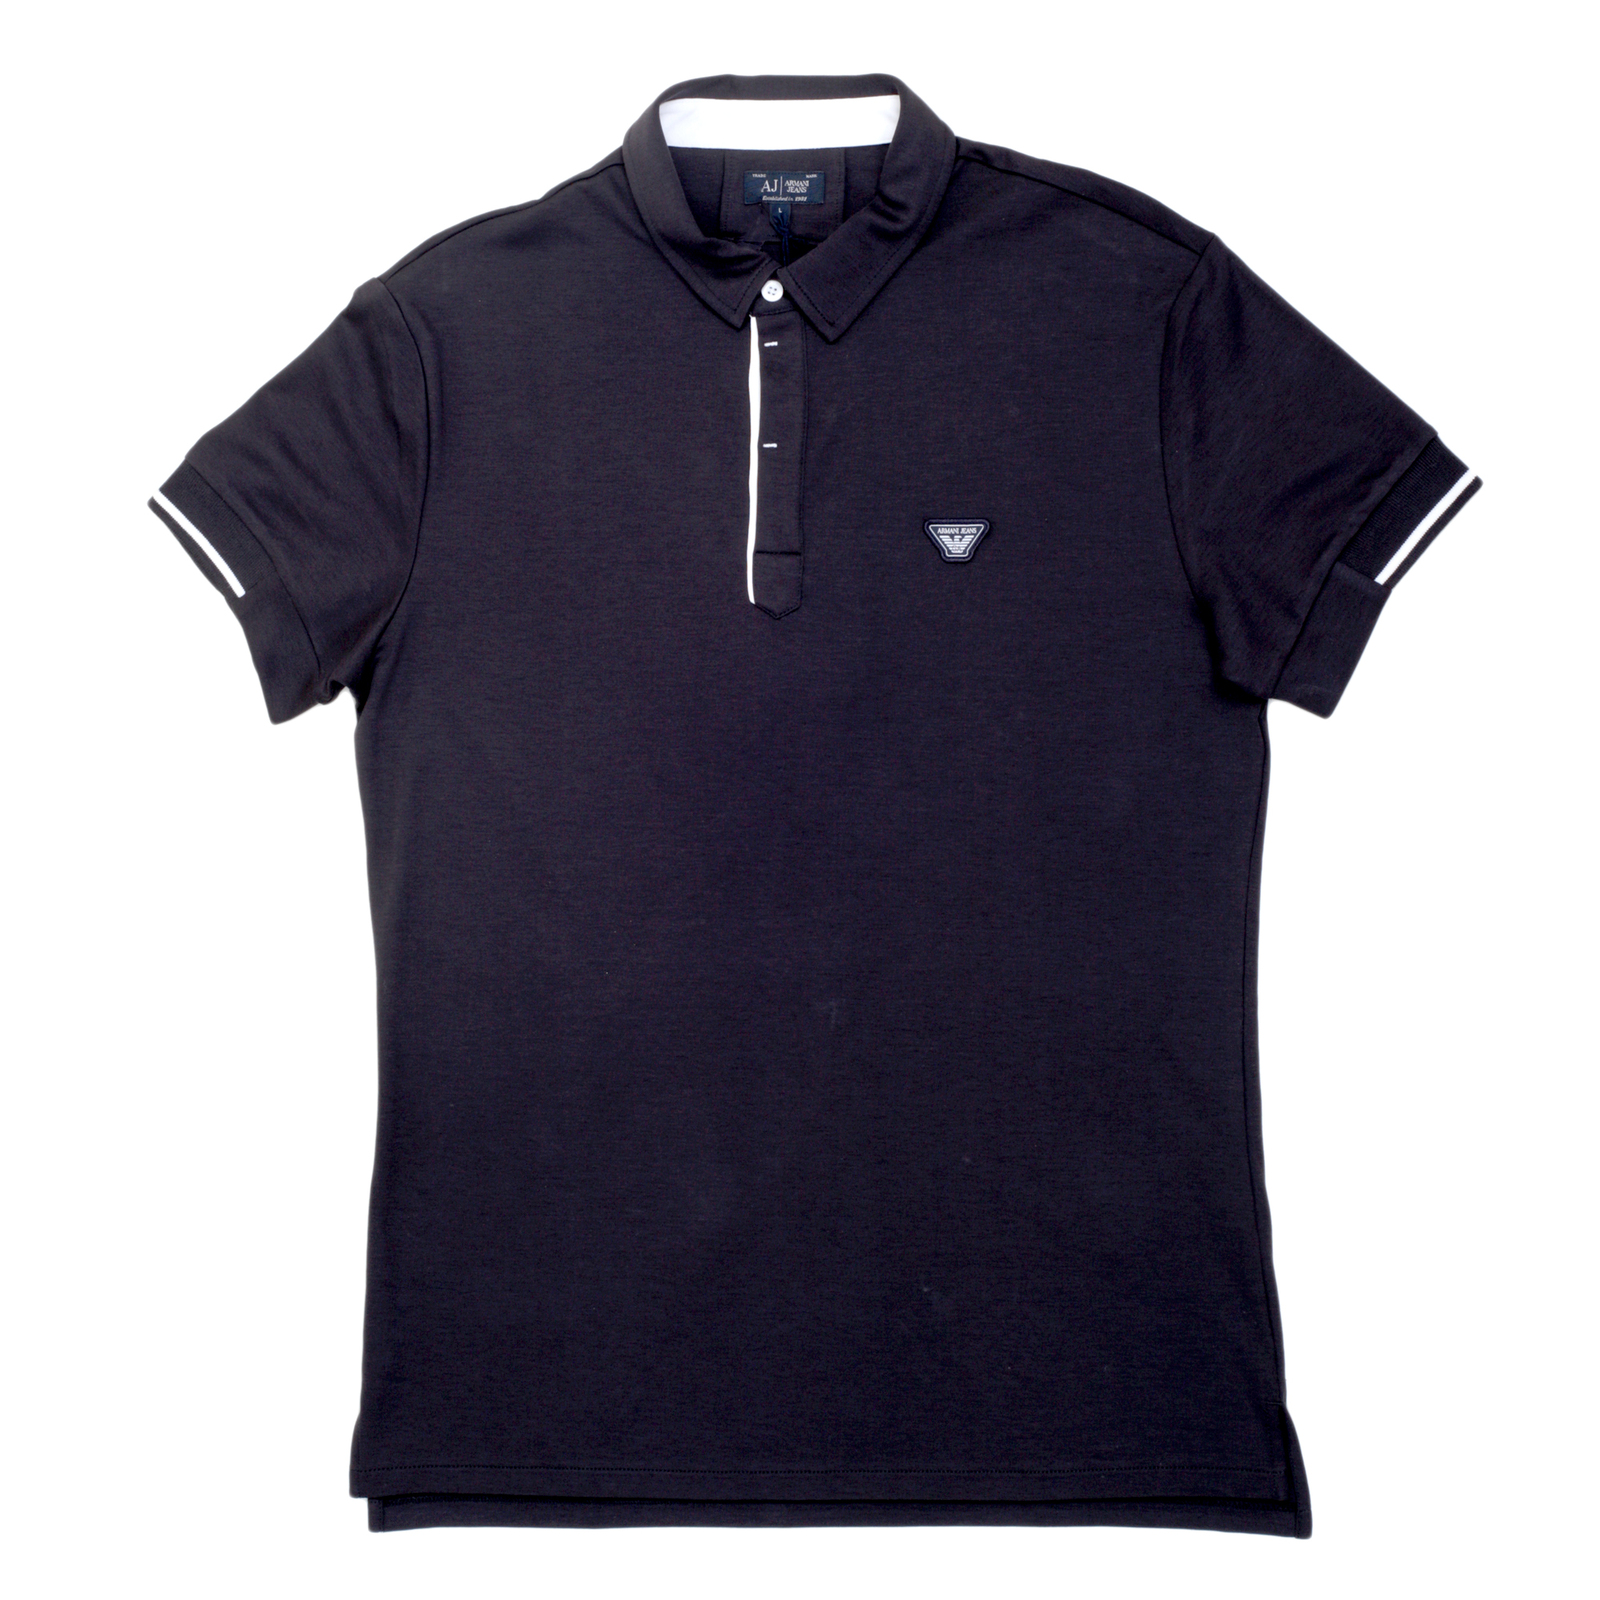 Armani Jeans Slimmer Fit Logo Embroidered Blue Polo Shirt for Men with  Ribbed Collar and Sleeve